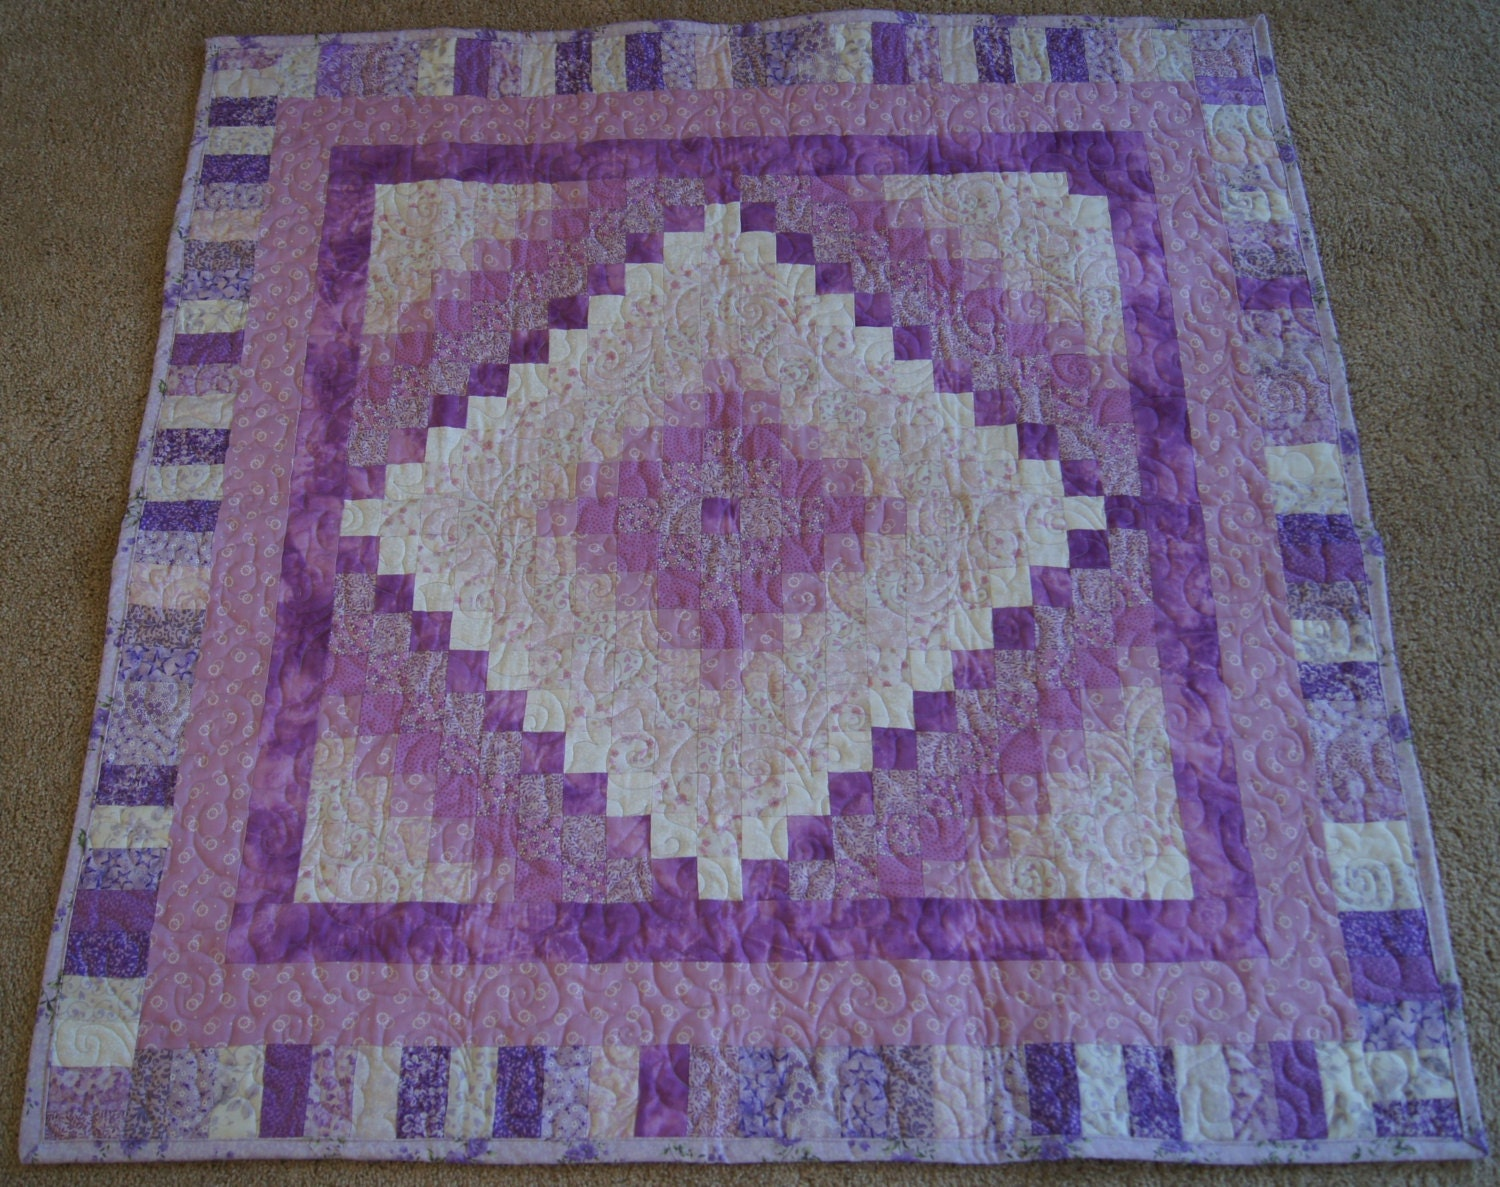 Trip Around the World Design LAP or BABY QUILT Pink and